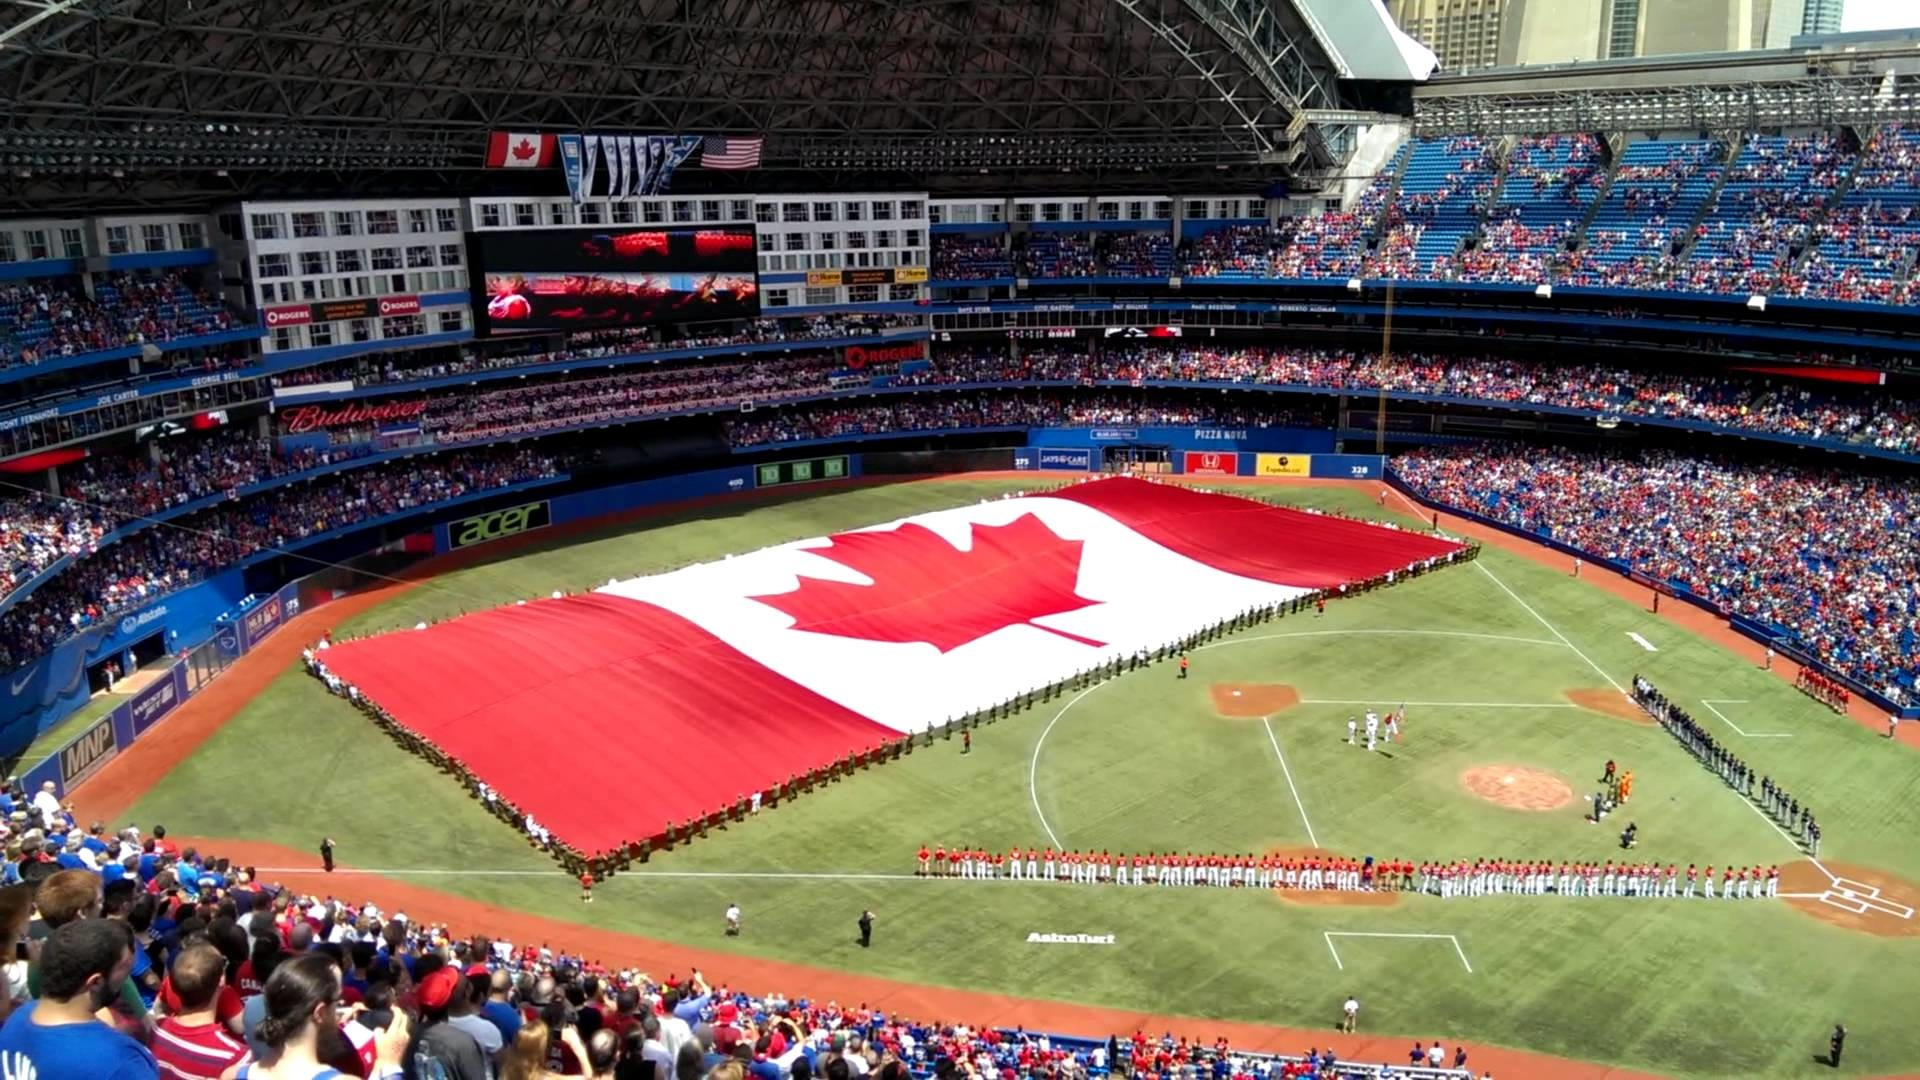 O Canada, from the Blue Jays game July 1 2014